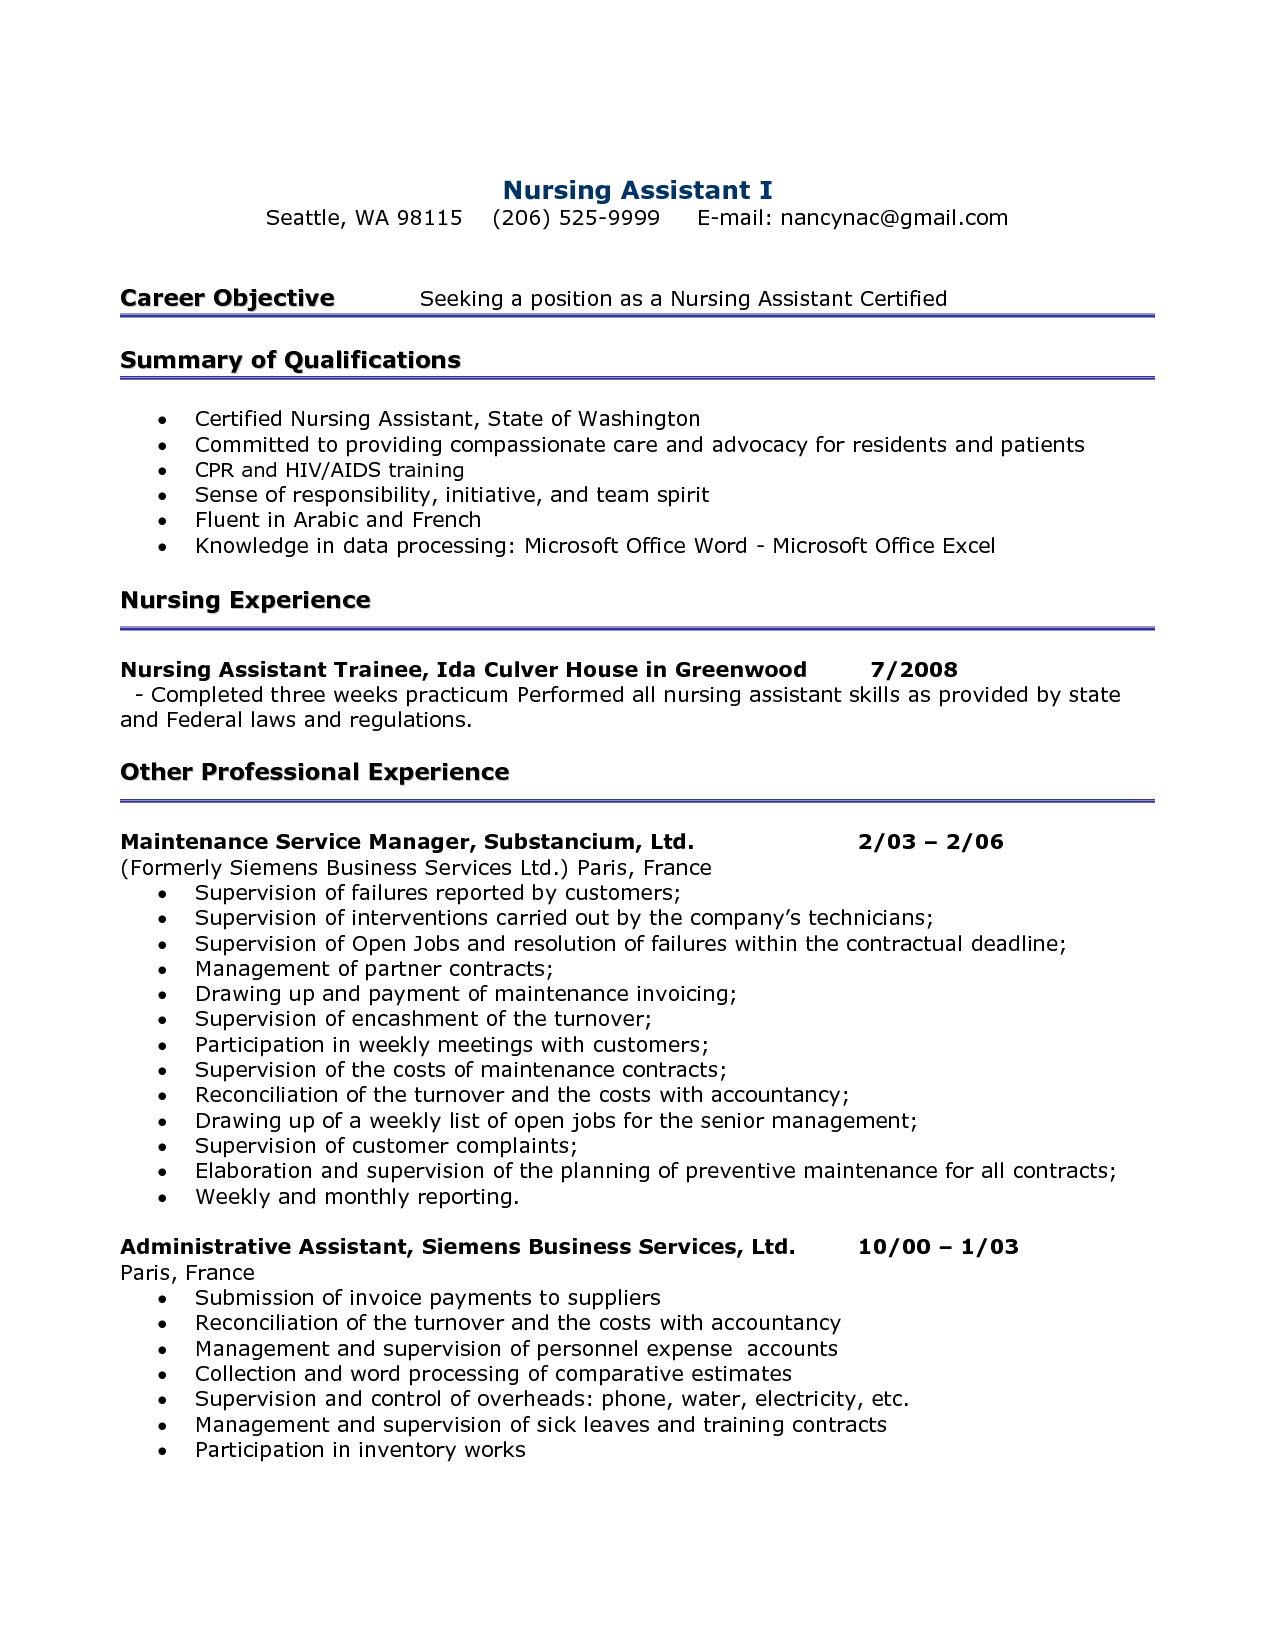 Certified Nursing Assistant Resume Examples Fair Certified Nursing Assistant Resume  Httpwww.resumecareer .